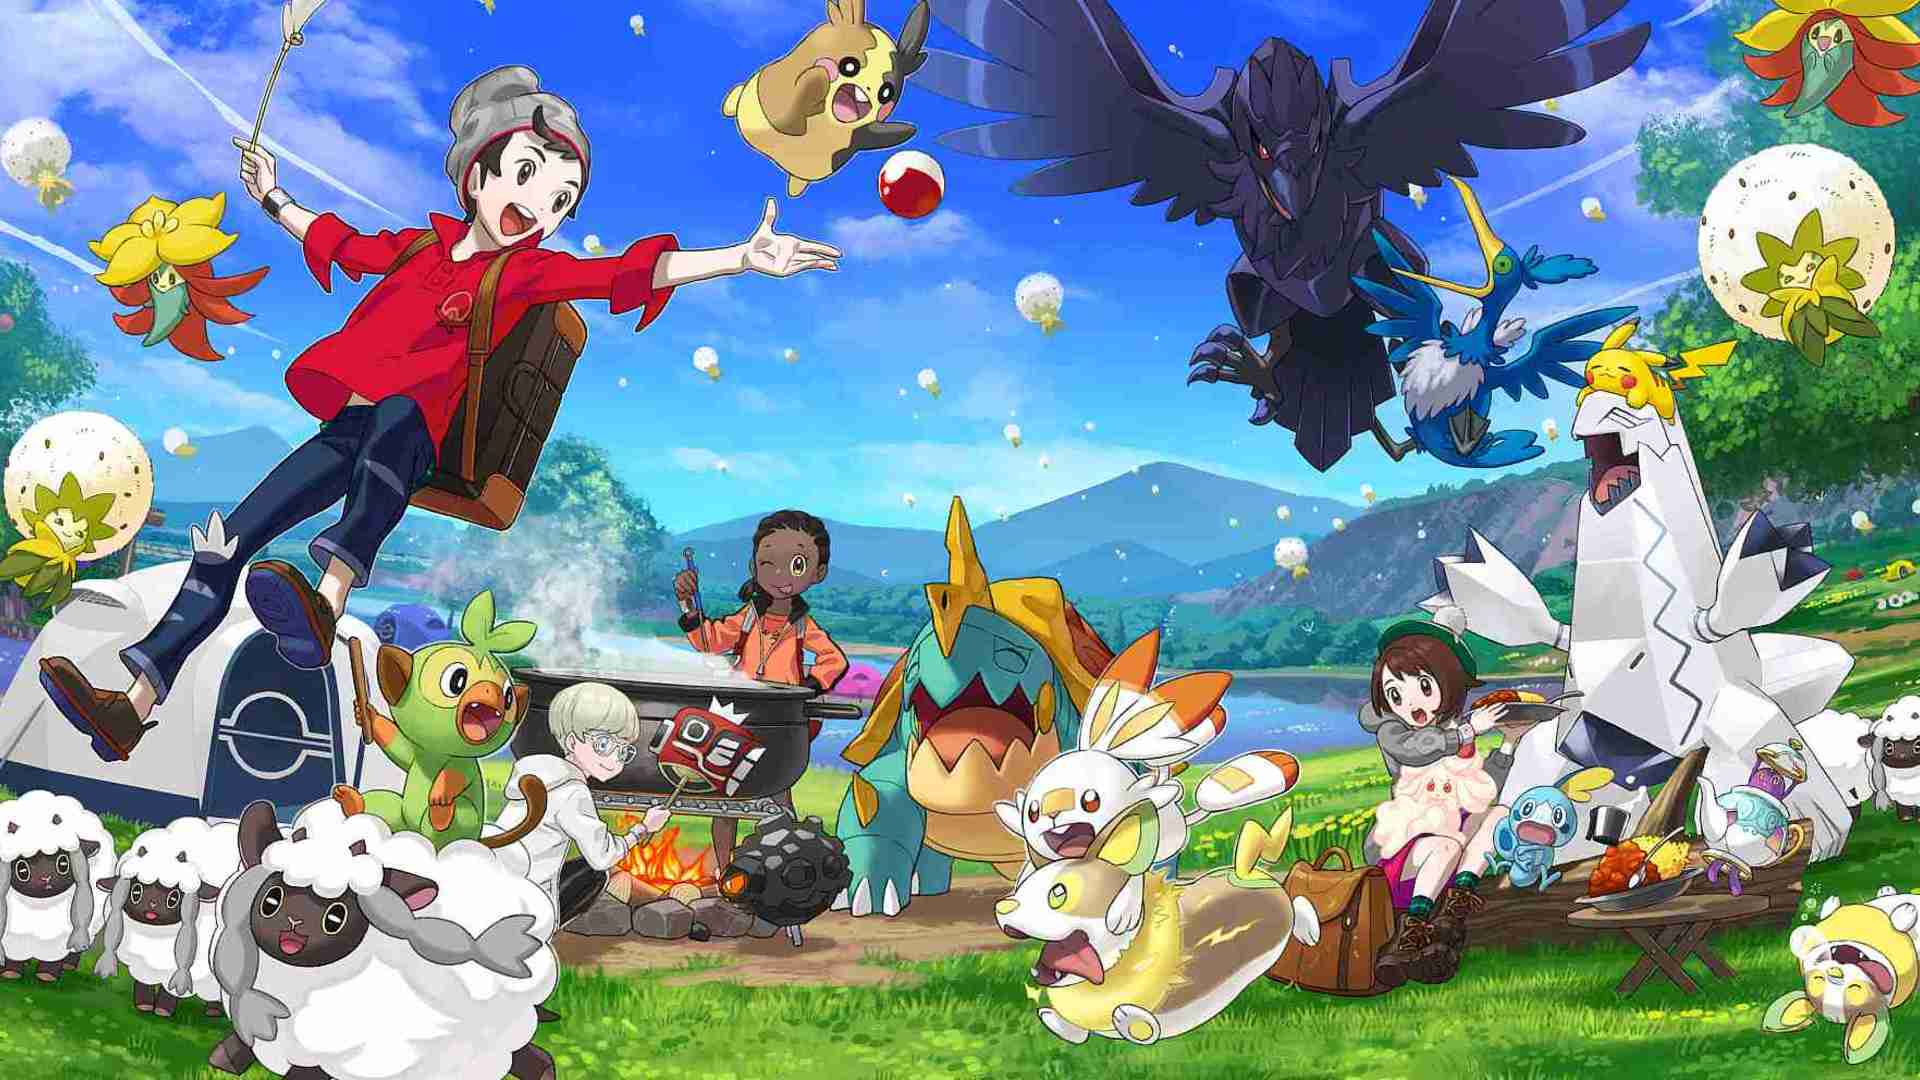 Pokemon Sword and Shield Review Impressions: Lovely and Warm, but Not a Next-Gen Pokemon Game